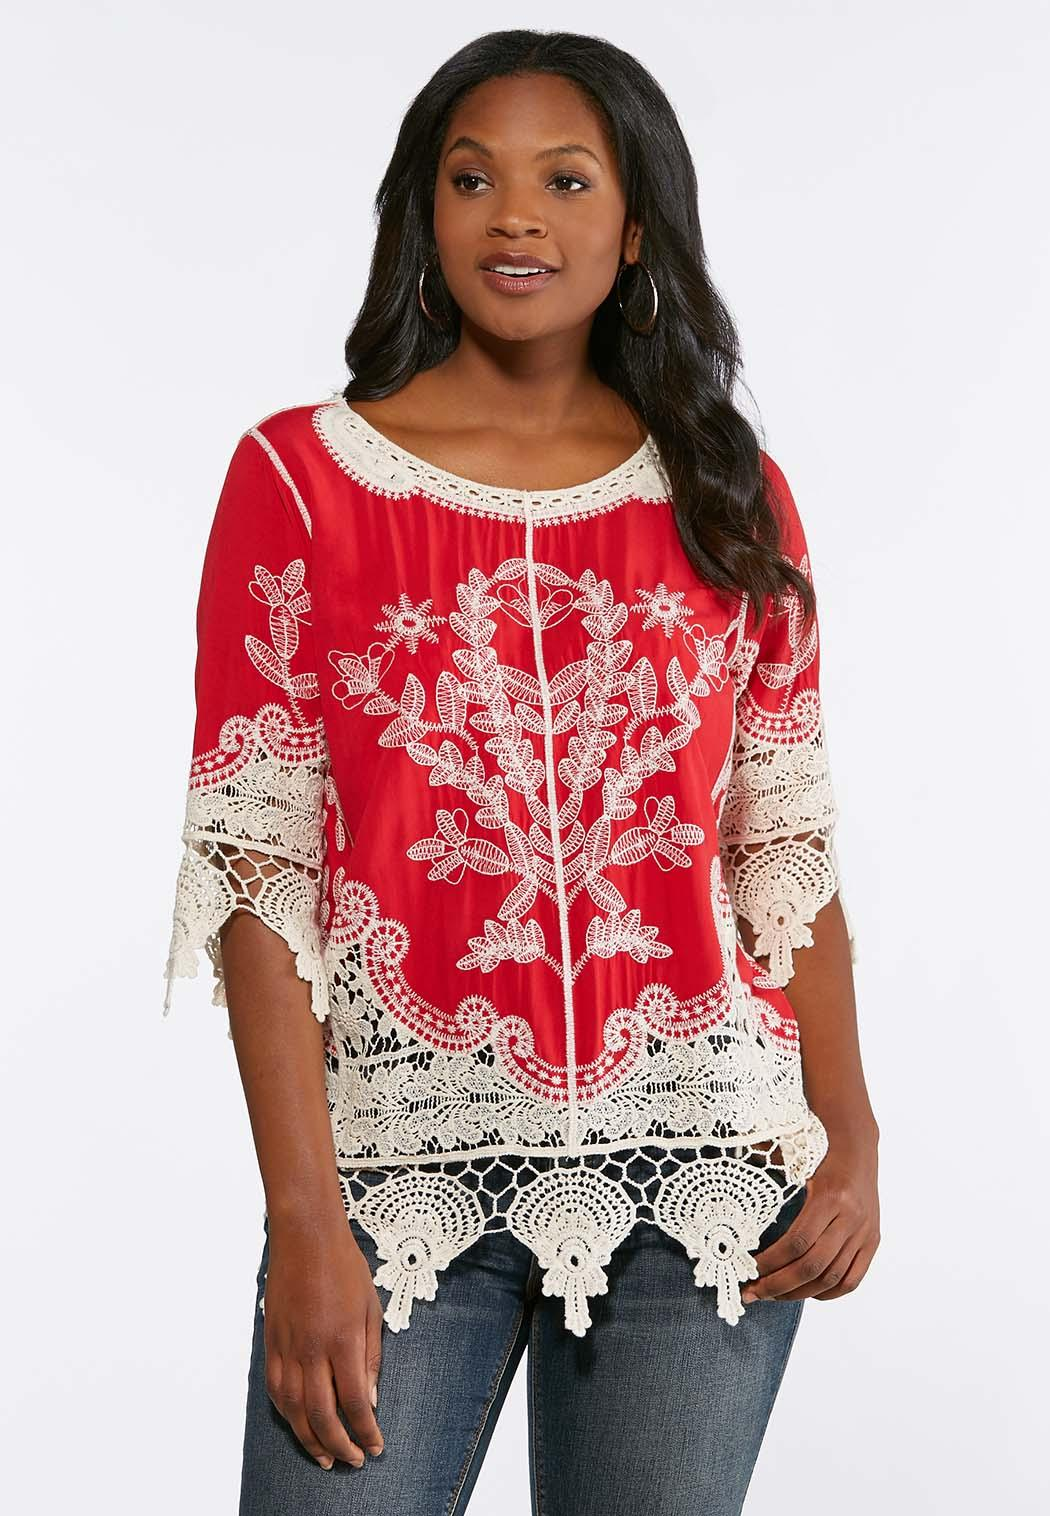 Crochet Embroidered Tunic Shirts Blouses Cato Fashions